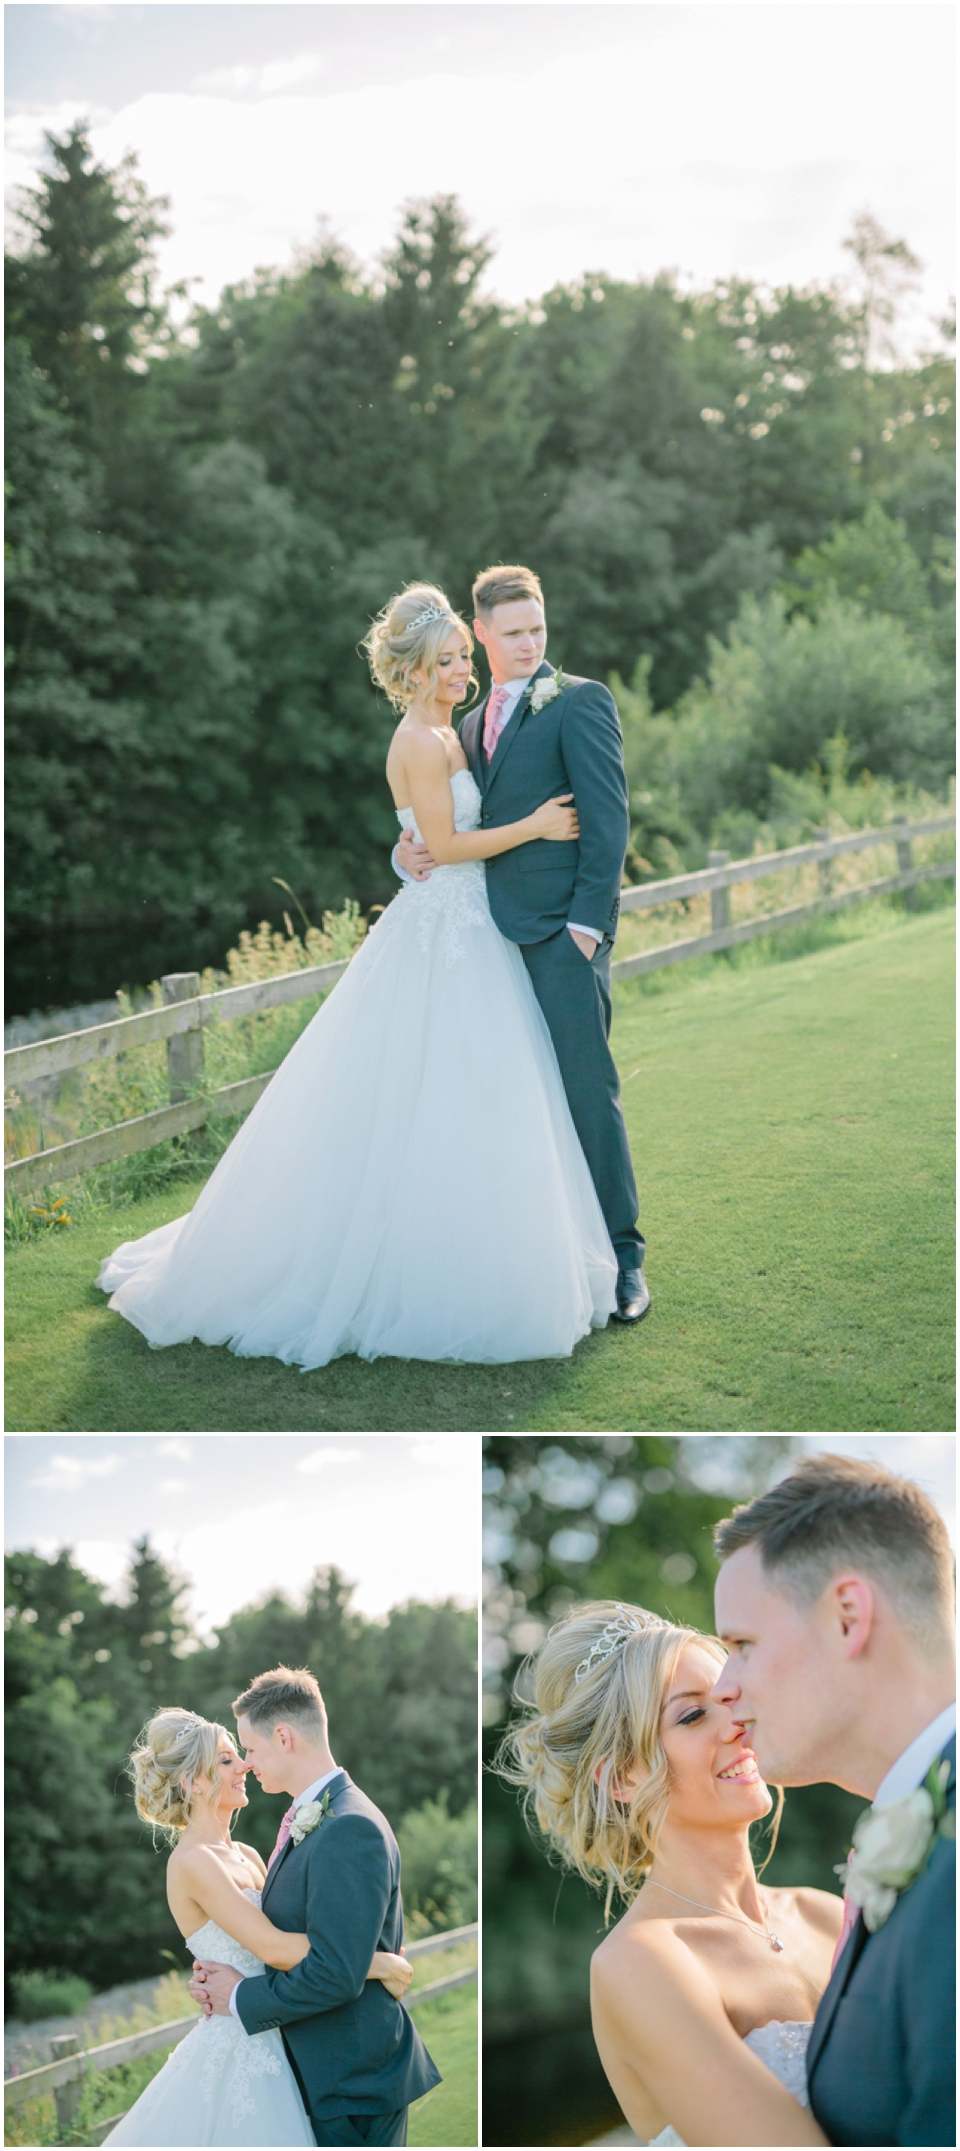 suzanne_li_photography_cumbria-wedding_0120.jpg